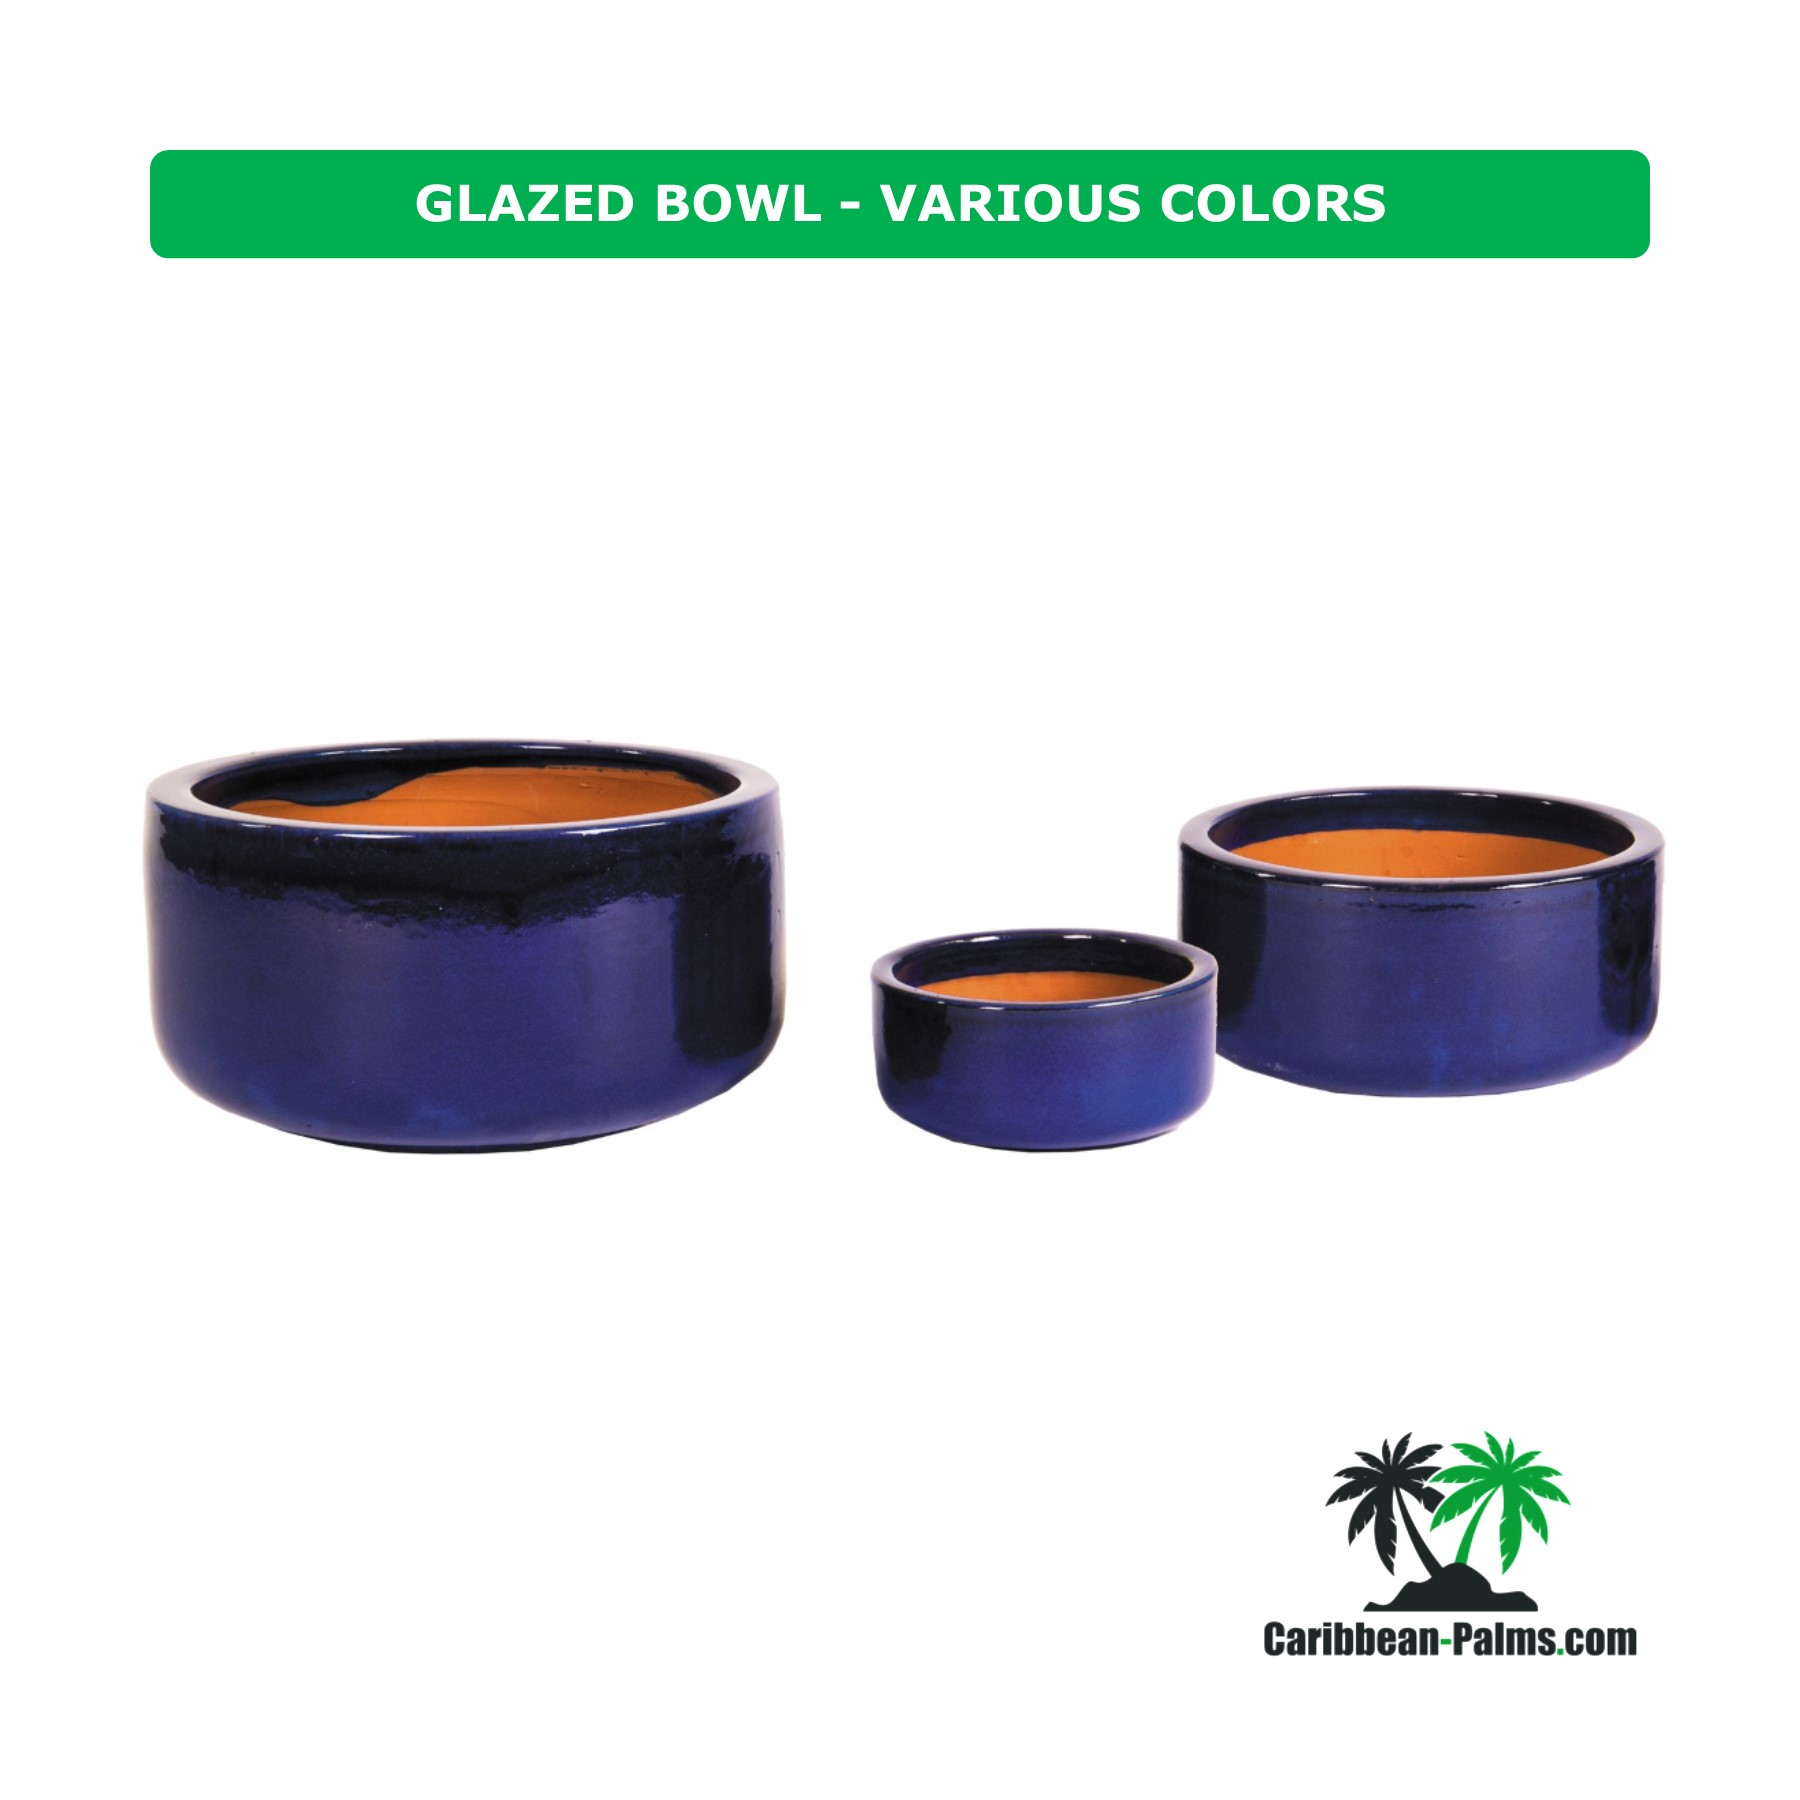 GLAZED BOWL VARIOUS COLORS